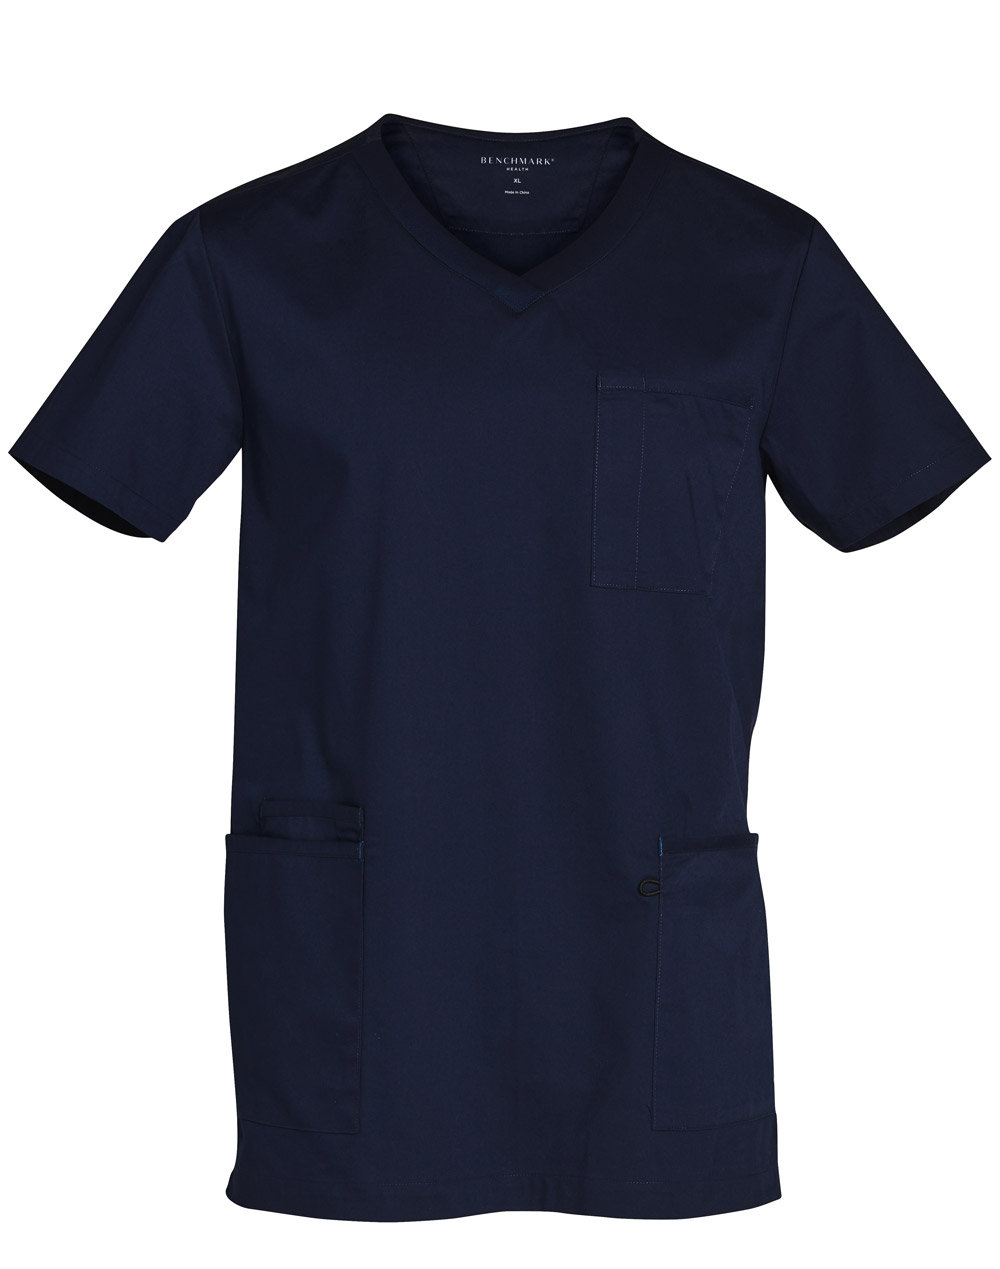 Buy Navy Mens v-Neck Contrast Trim Scrub Tops Online in Perth